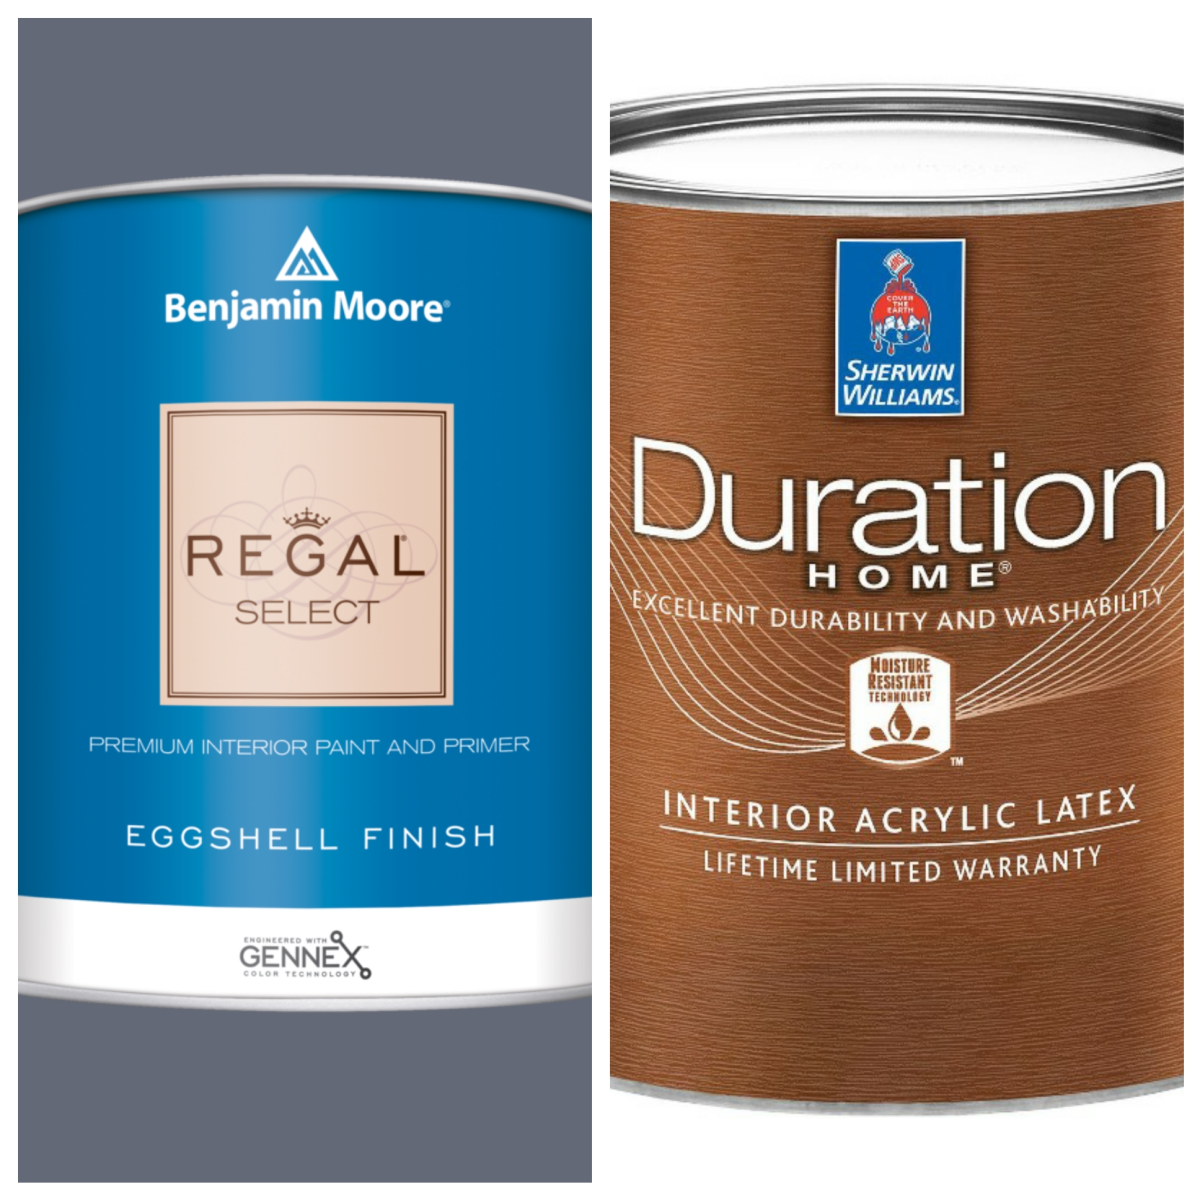 My top two interior paint picks.